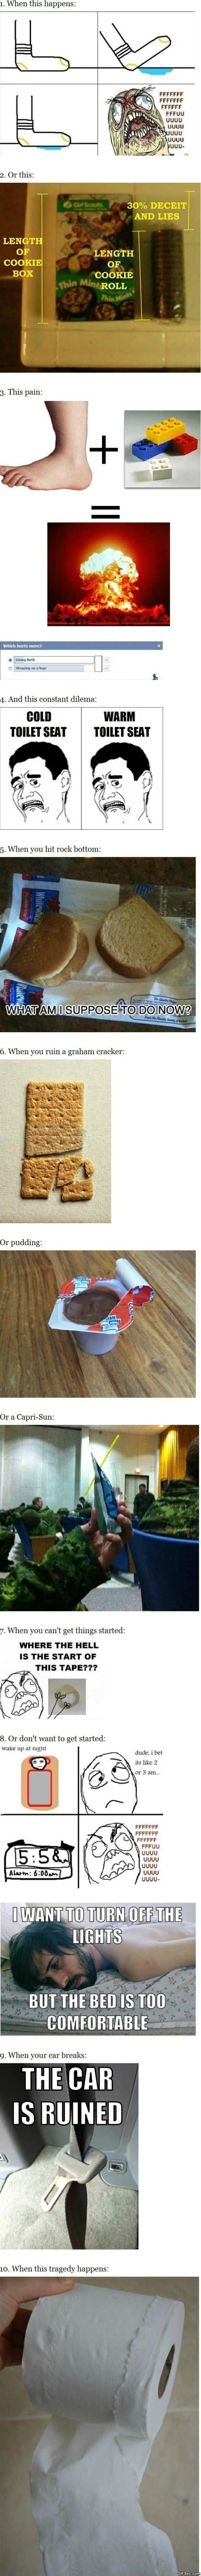 10-most-annoying-things-ever-meme-2015